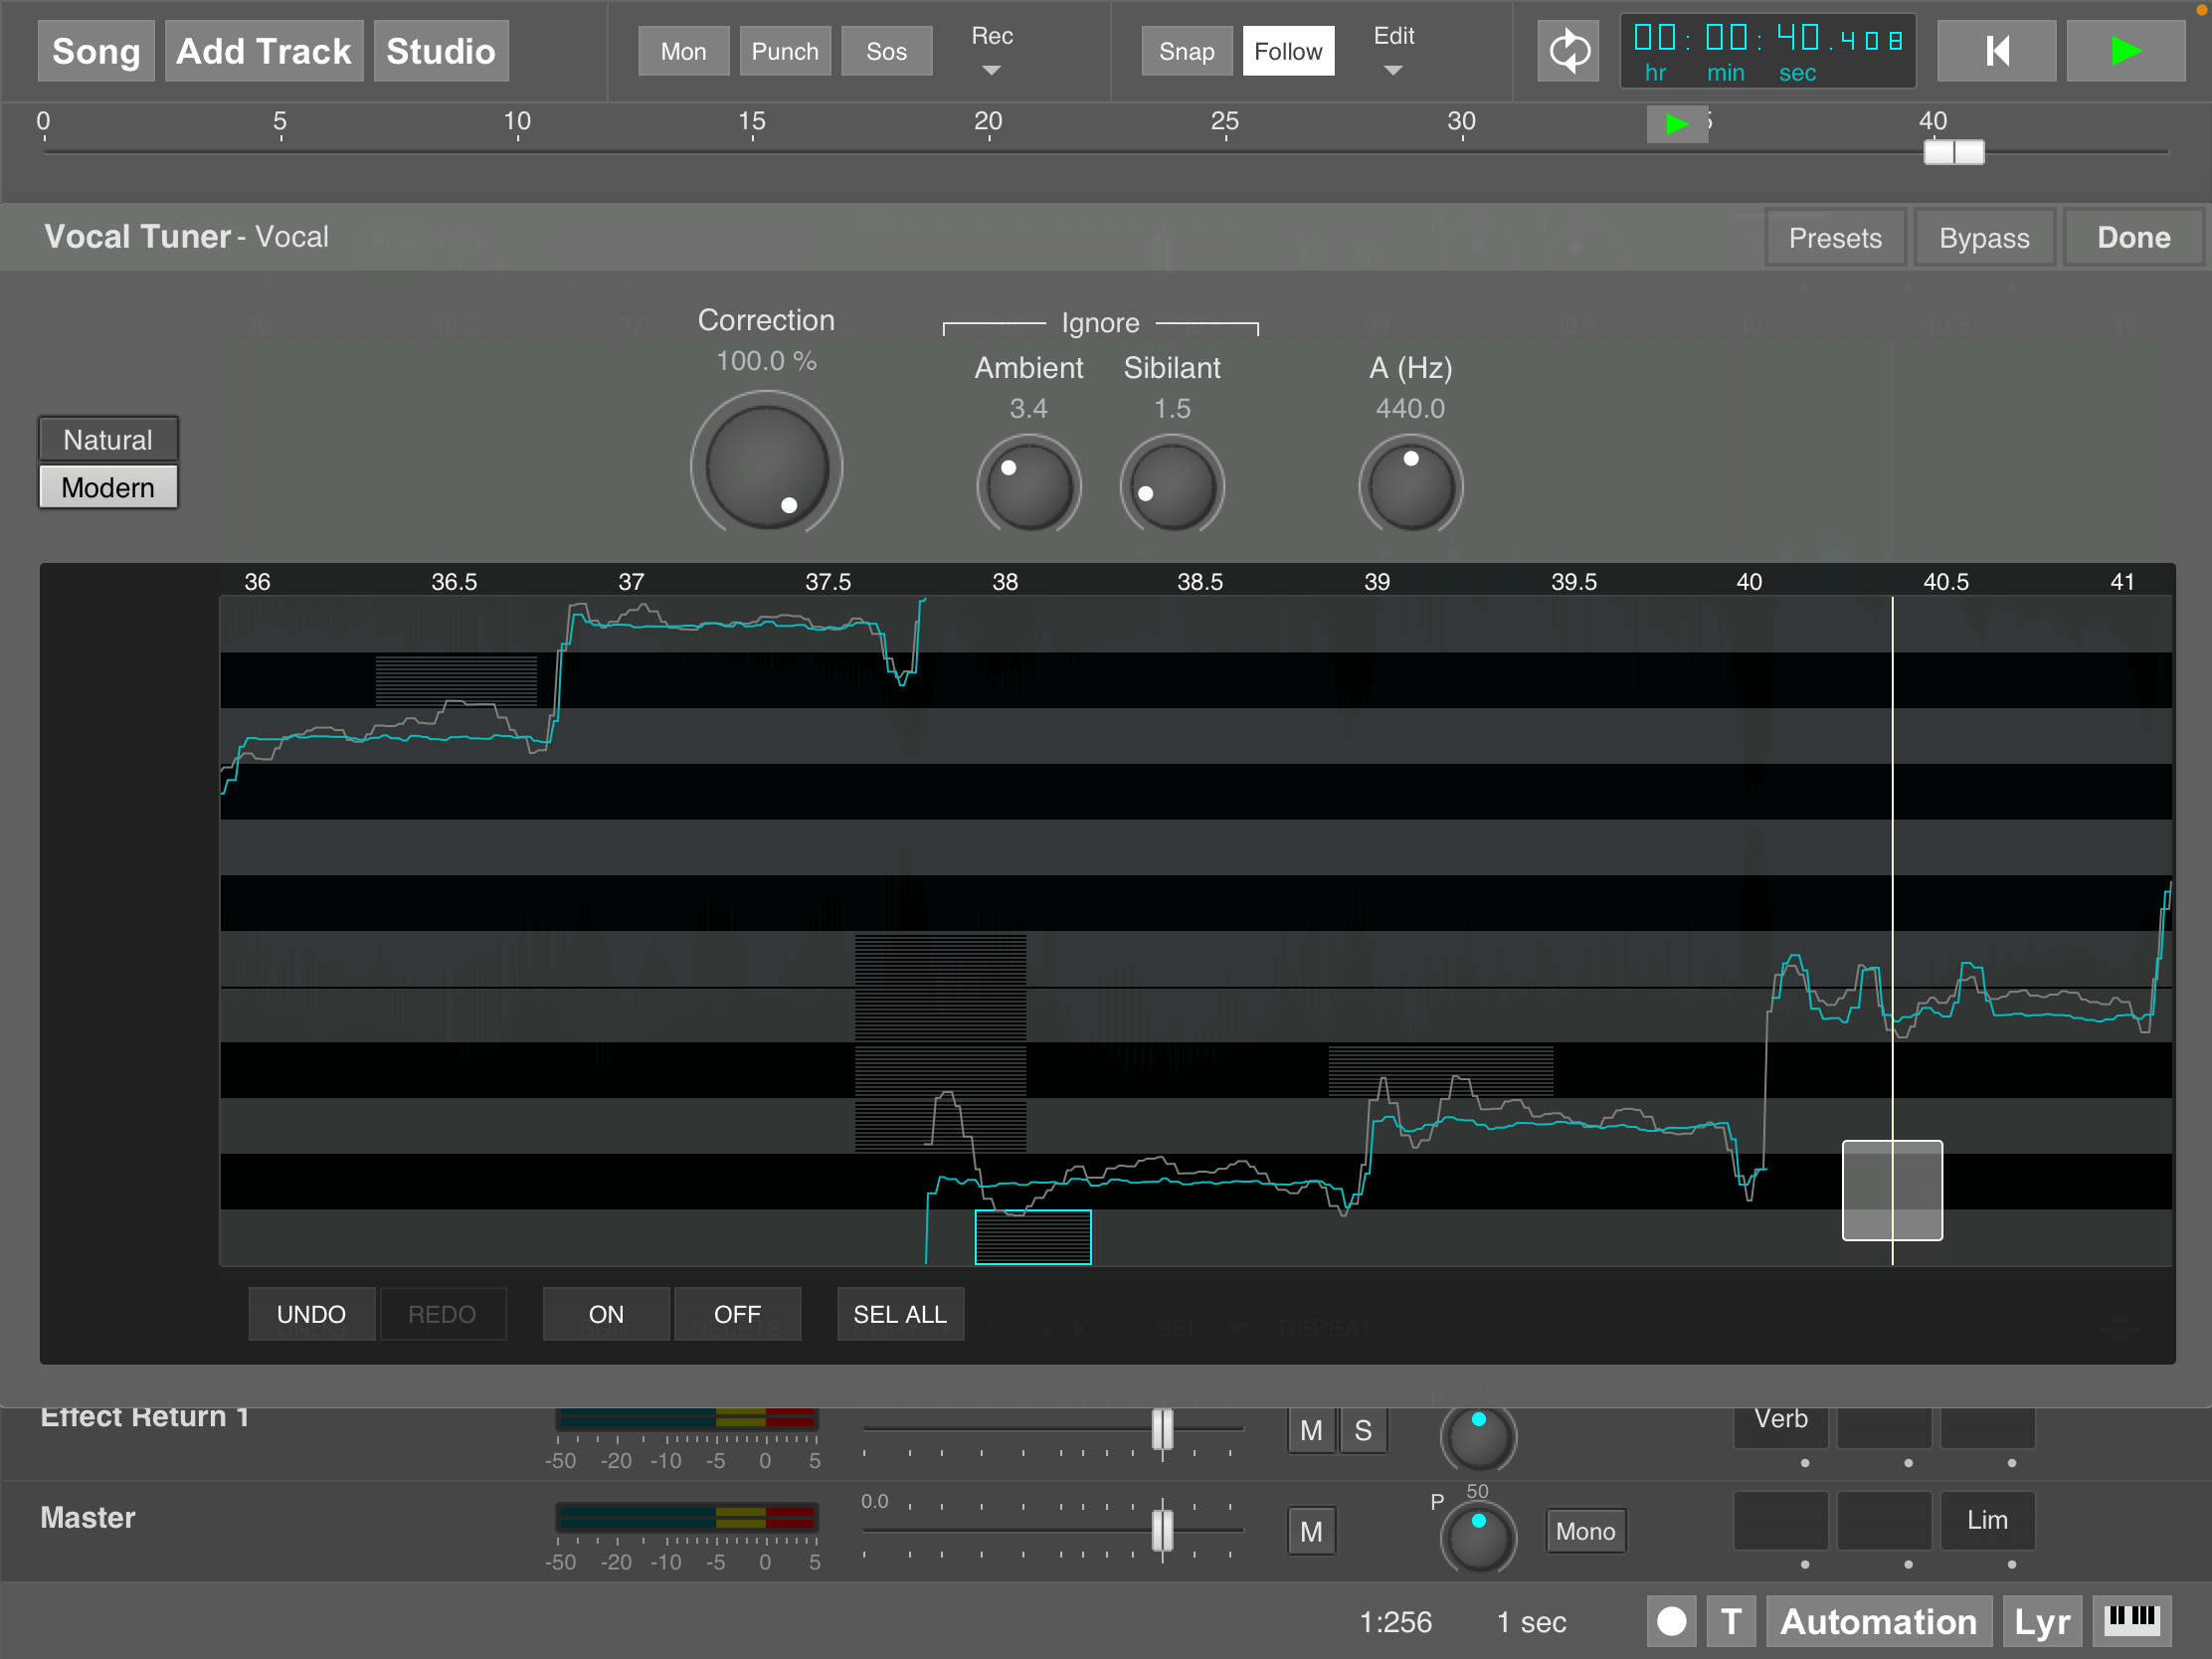 MultitrackStudio for iPad - Vocal Tuner effect